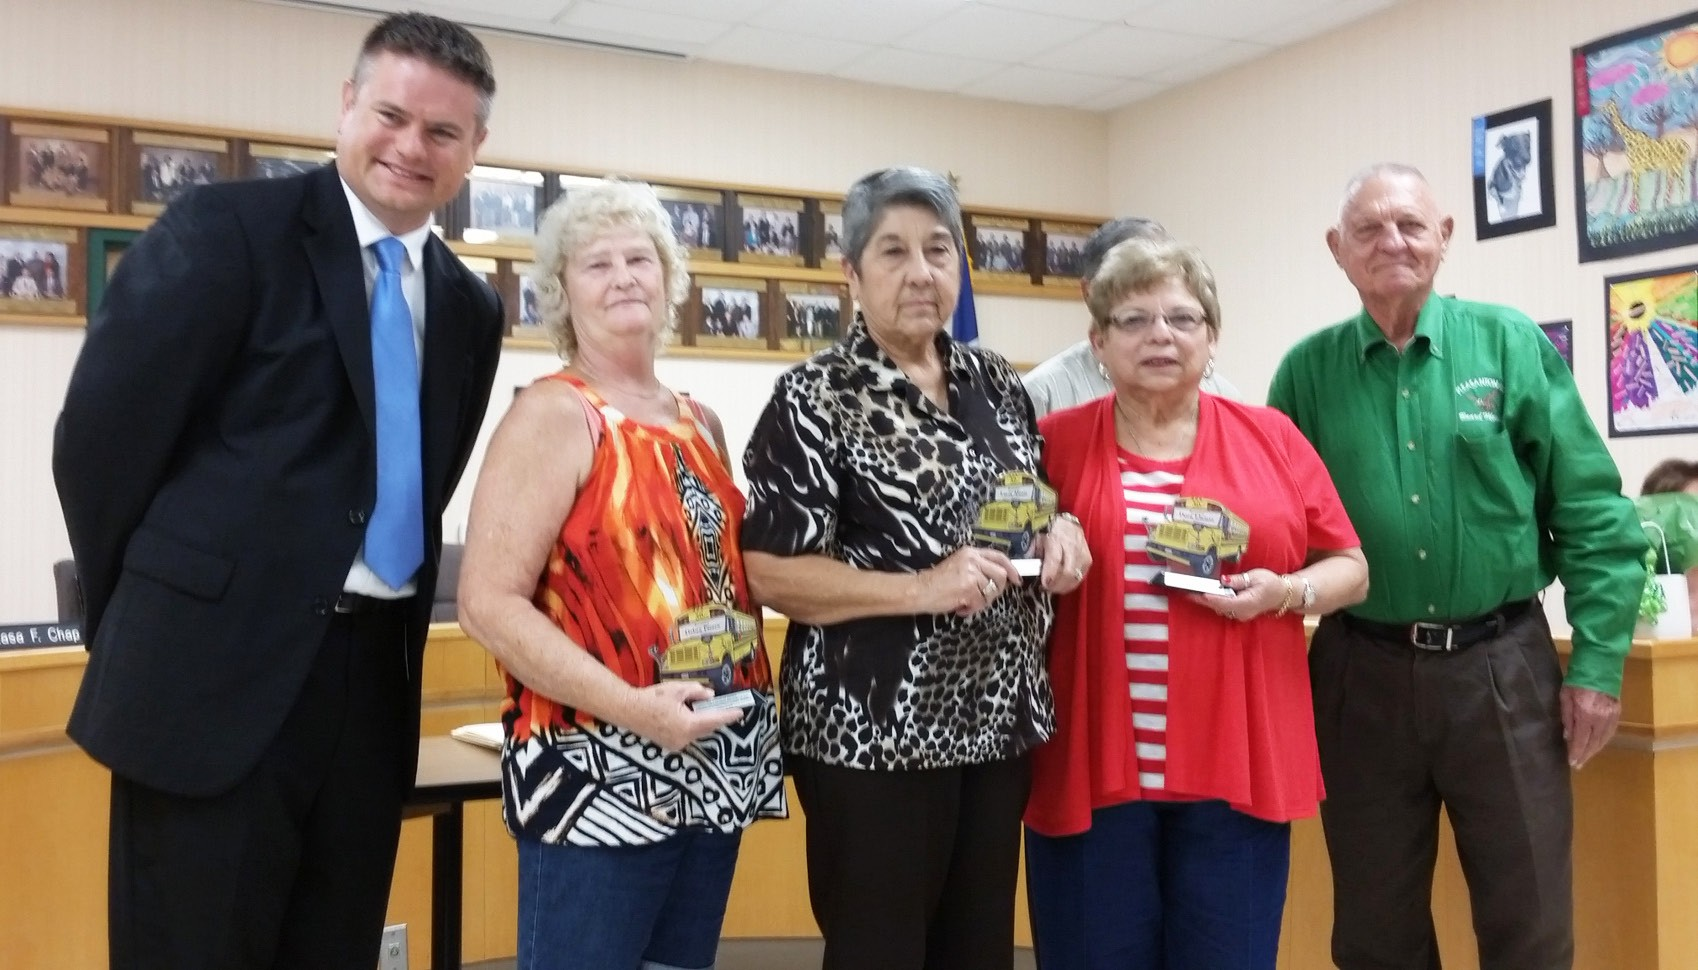 "Pleasanton ISD Superintendent Matthew Mann (left) along with PISD Board President Frank A. ""Butch"" Tudyk presented awards to Debra Pierce, Lucy Alaniz, Dora Llamas on their retirement and service to PISD as bus drivers for over 30 years each."